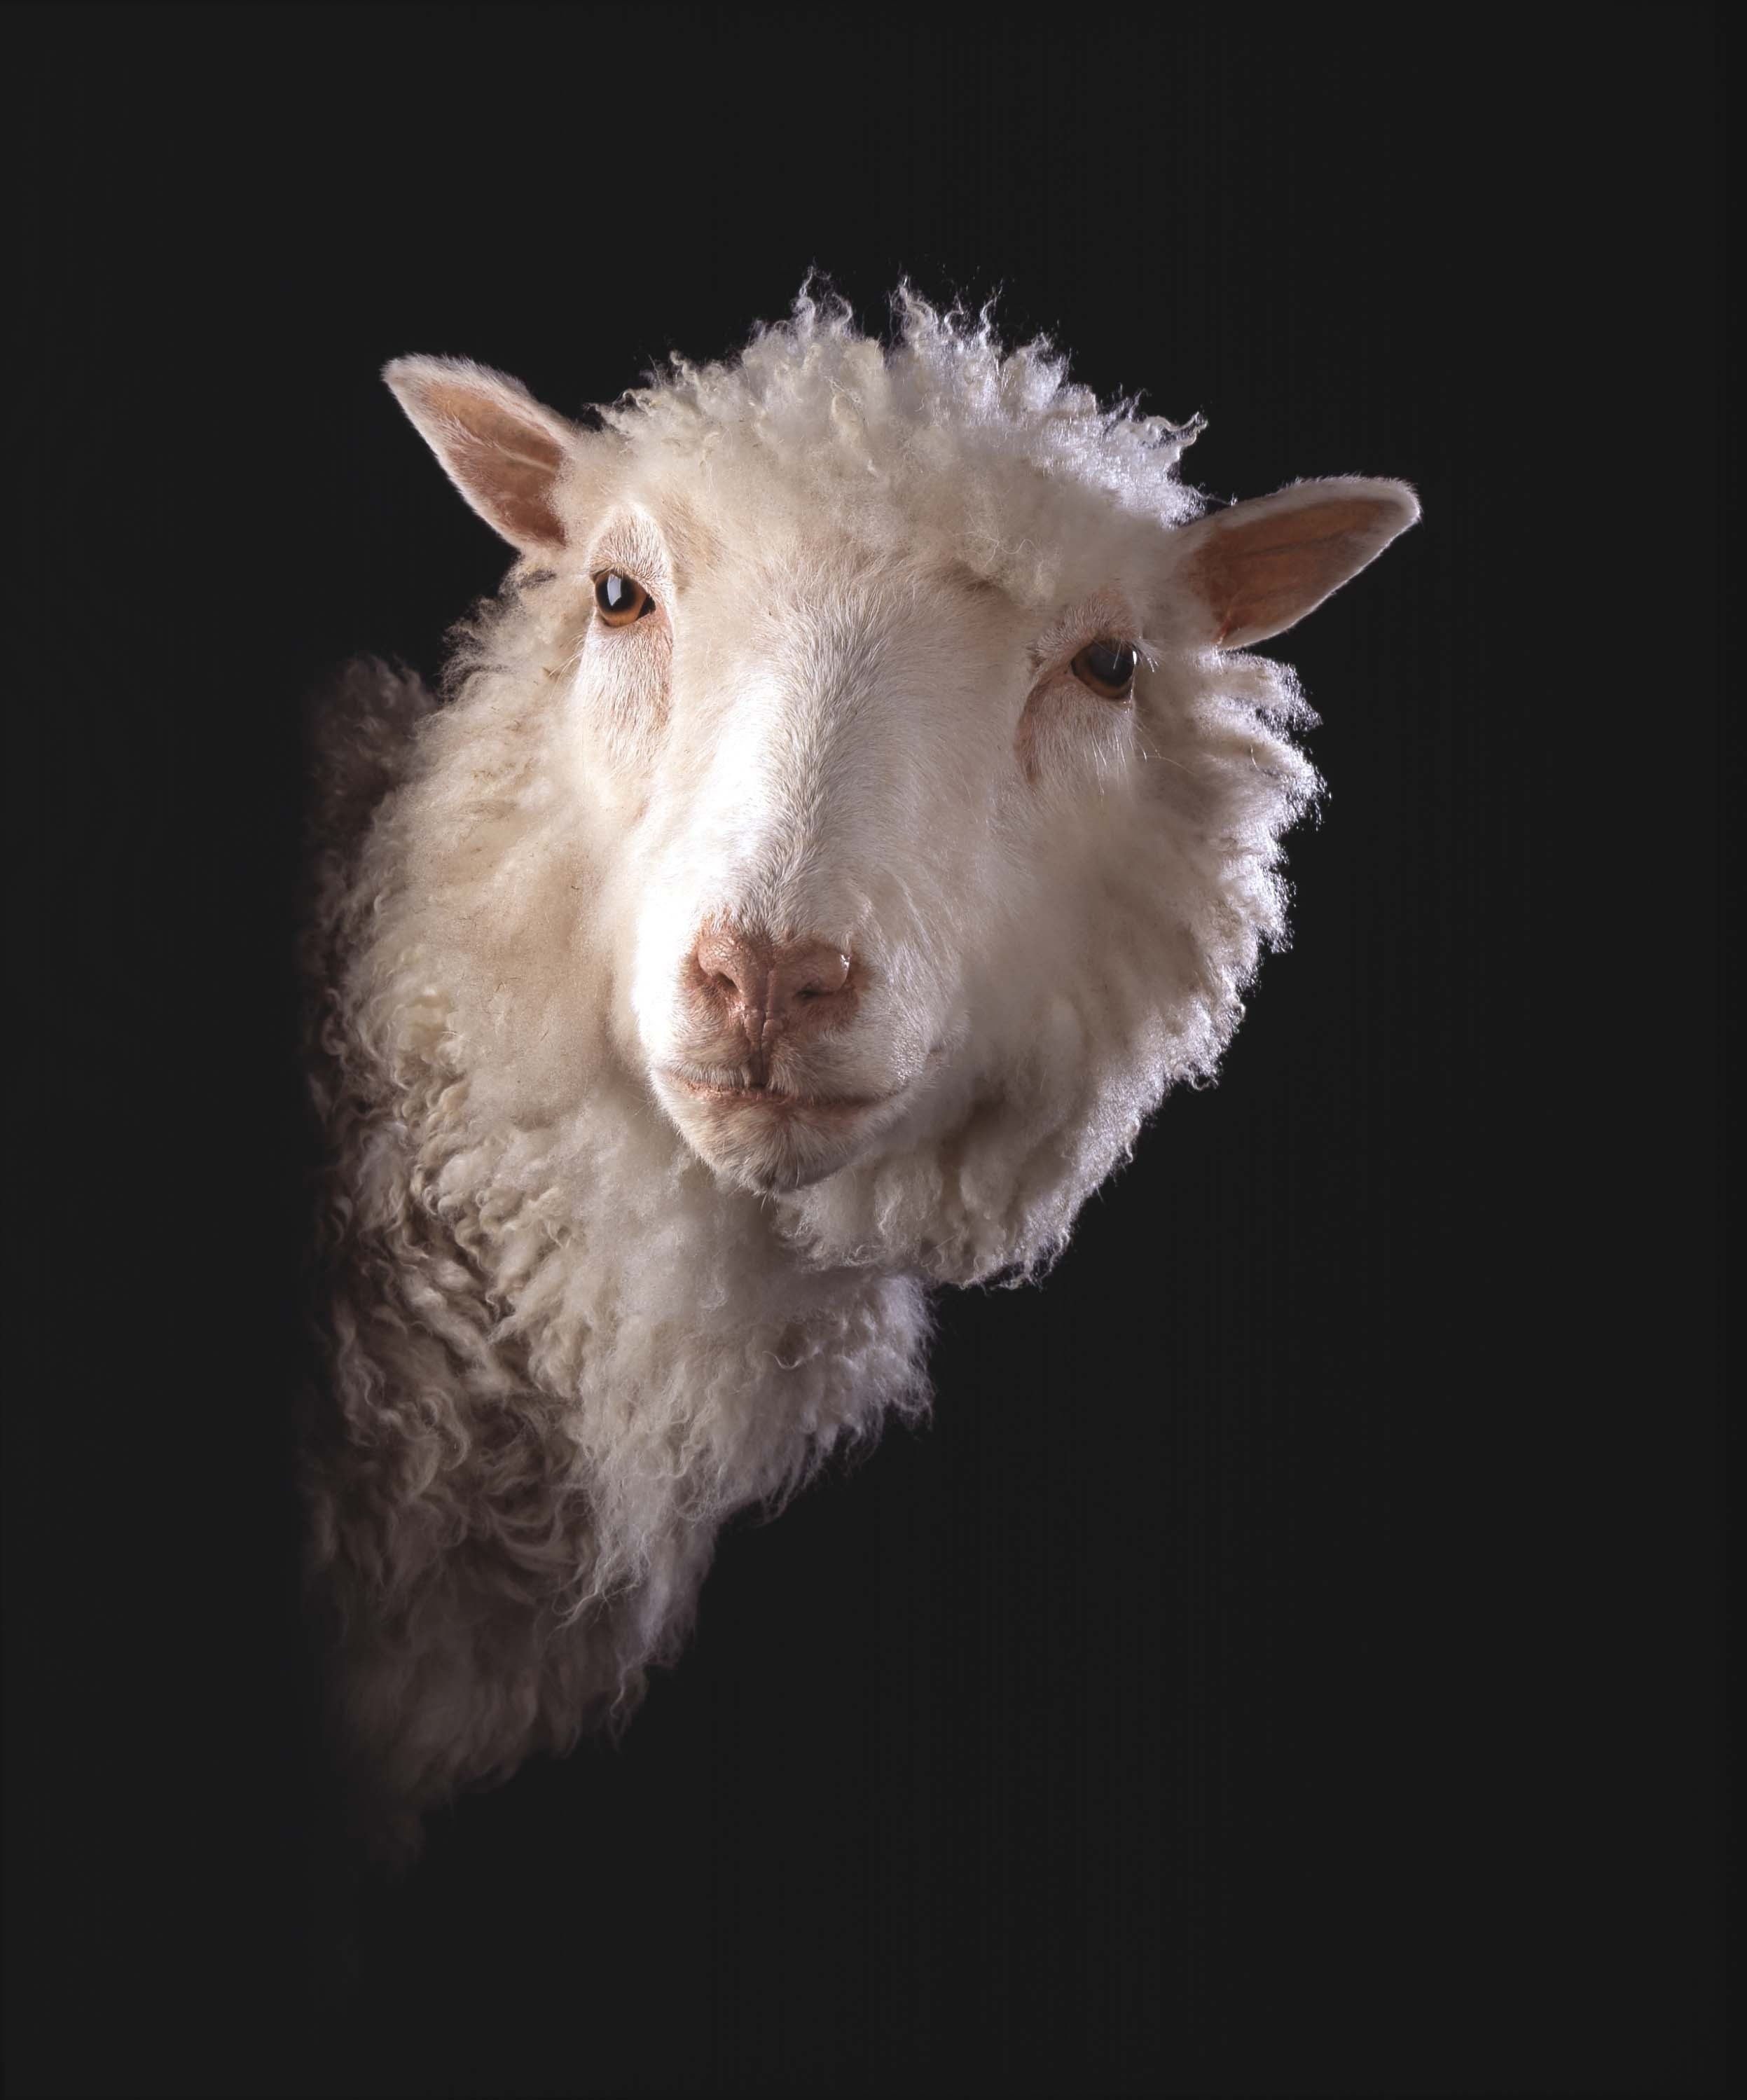 dolly the sheep Dolly the sheep made biotech history in 1996 when she became the first animal cloned from adult somatic cells she lived to the age of seven, which is young for sheep.